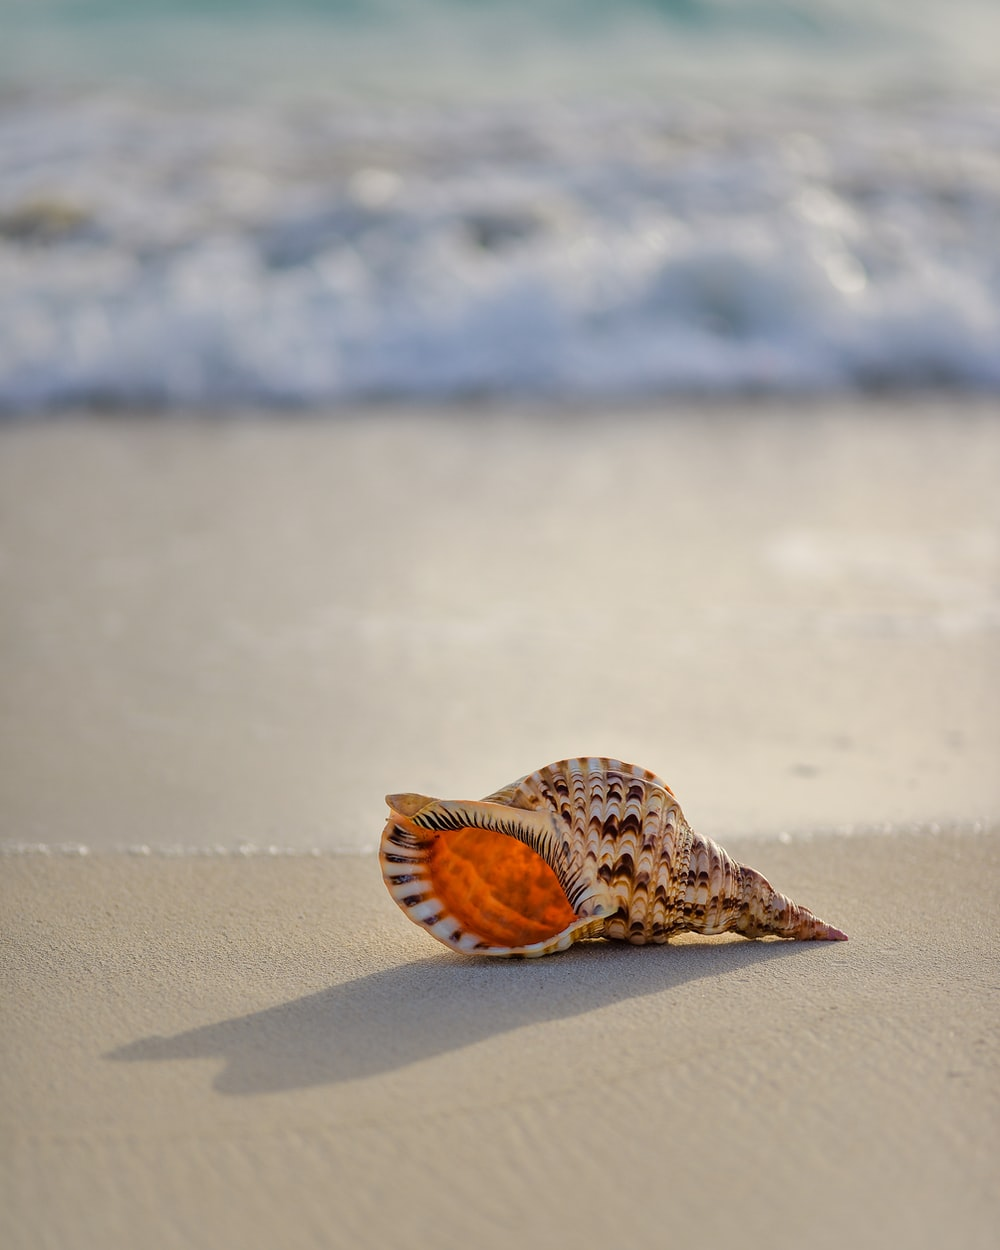 brown and white conch on seashore